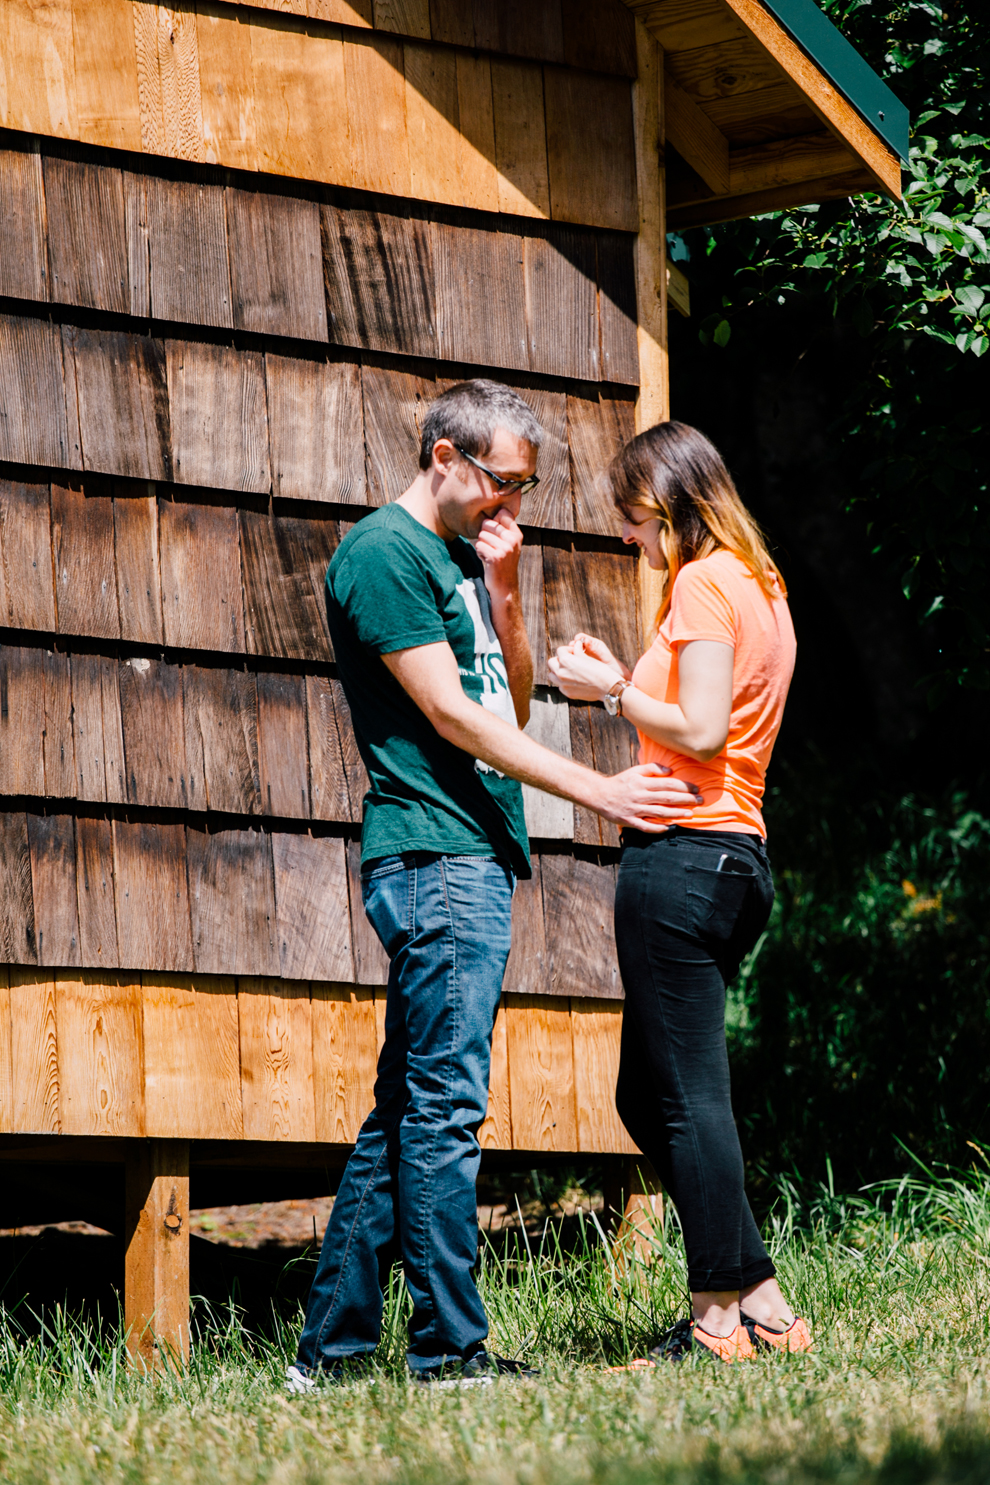 013-orcas-island-engagement-proposal-camp-orkila-katheryn-moran-photography.jpg